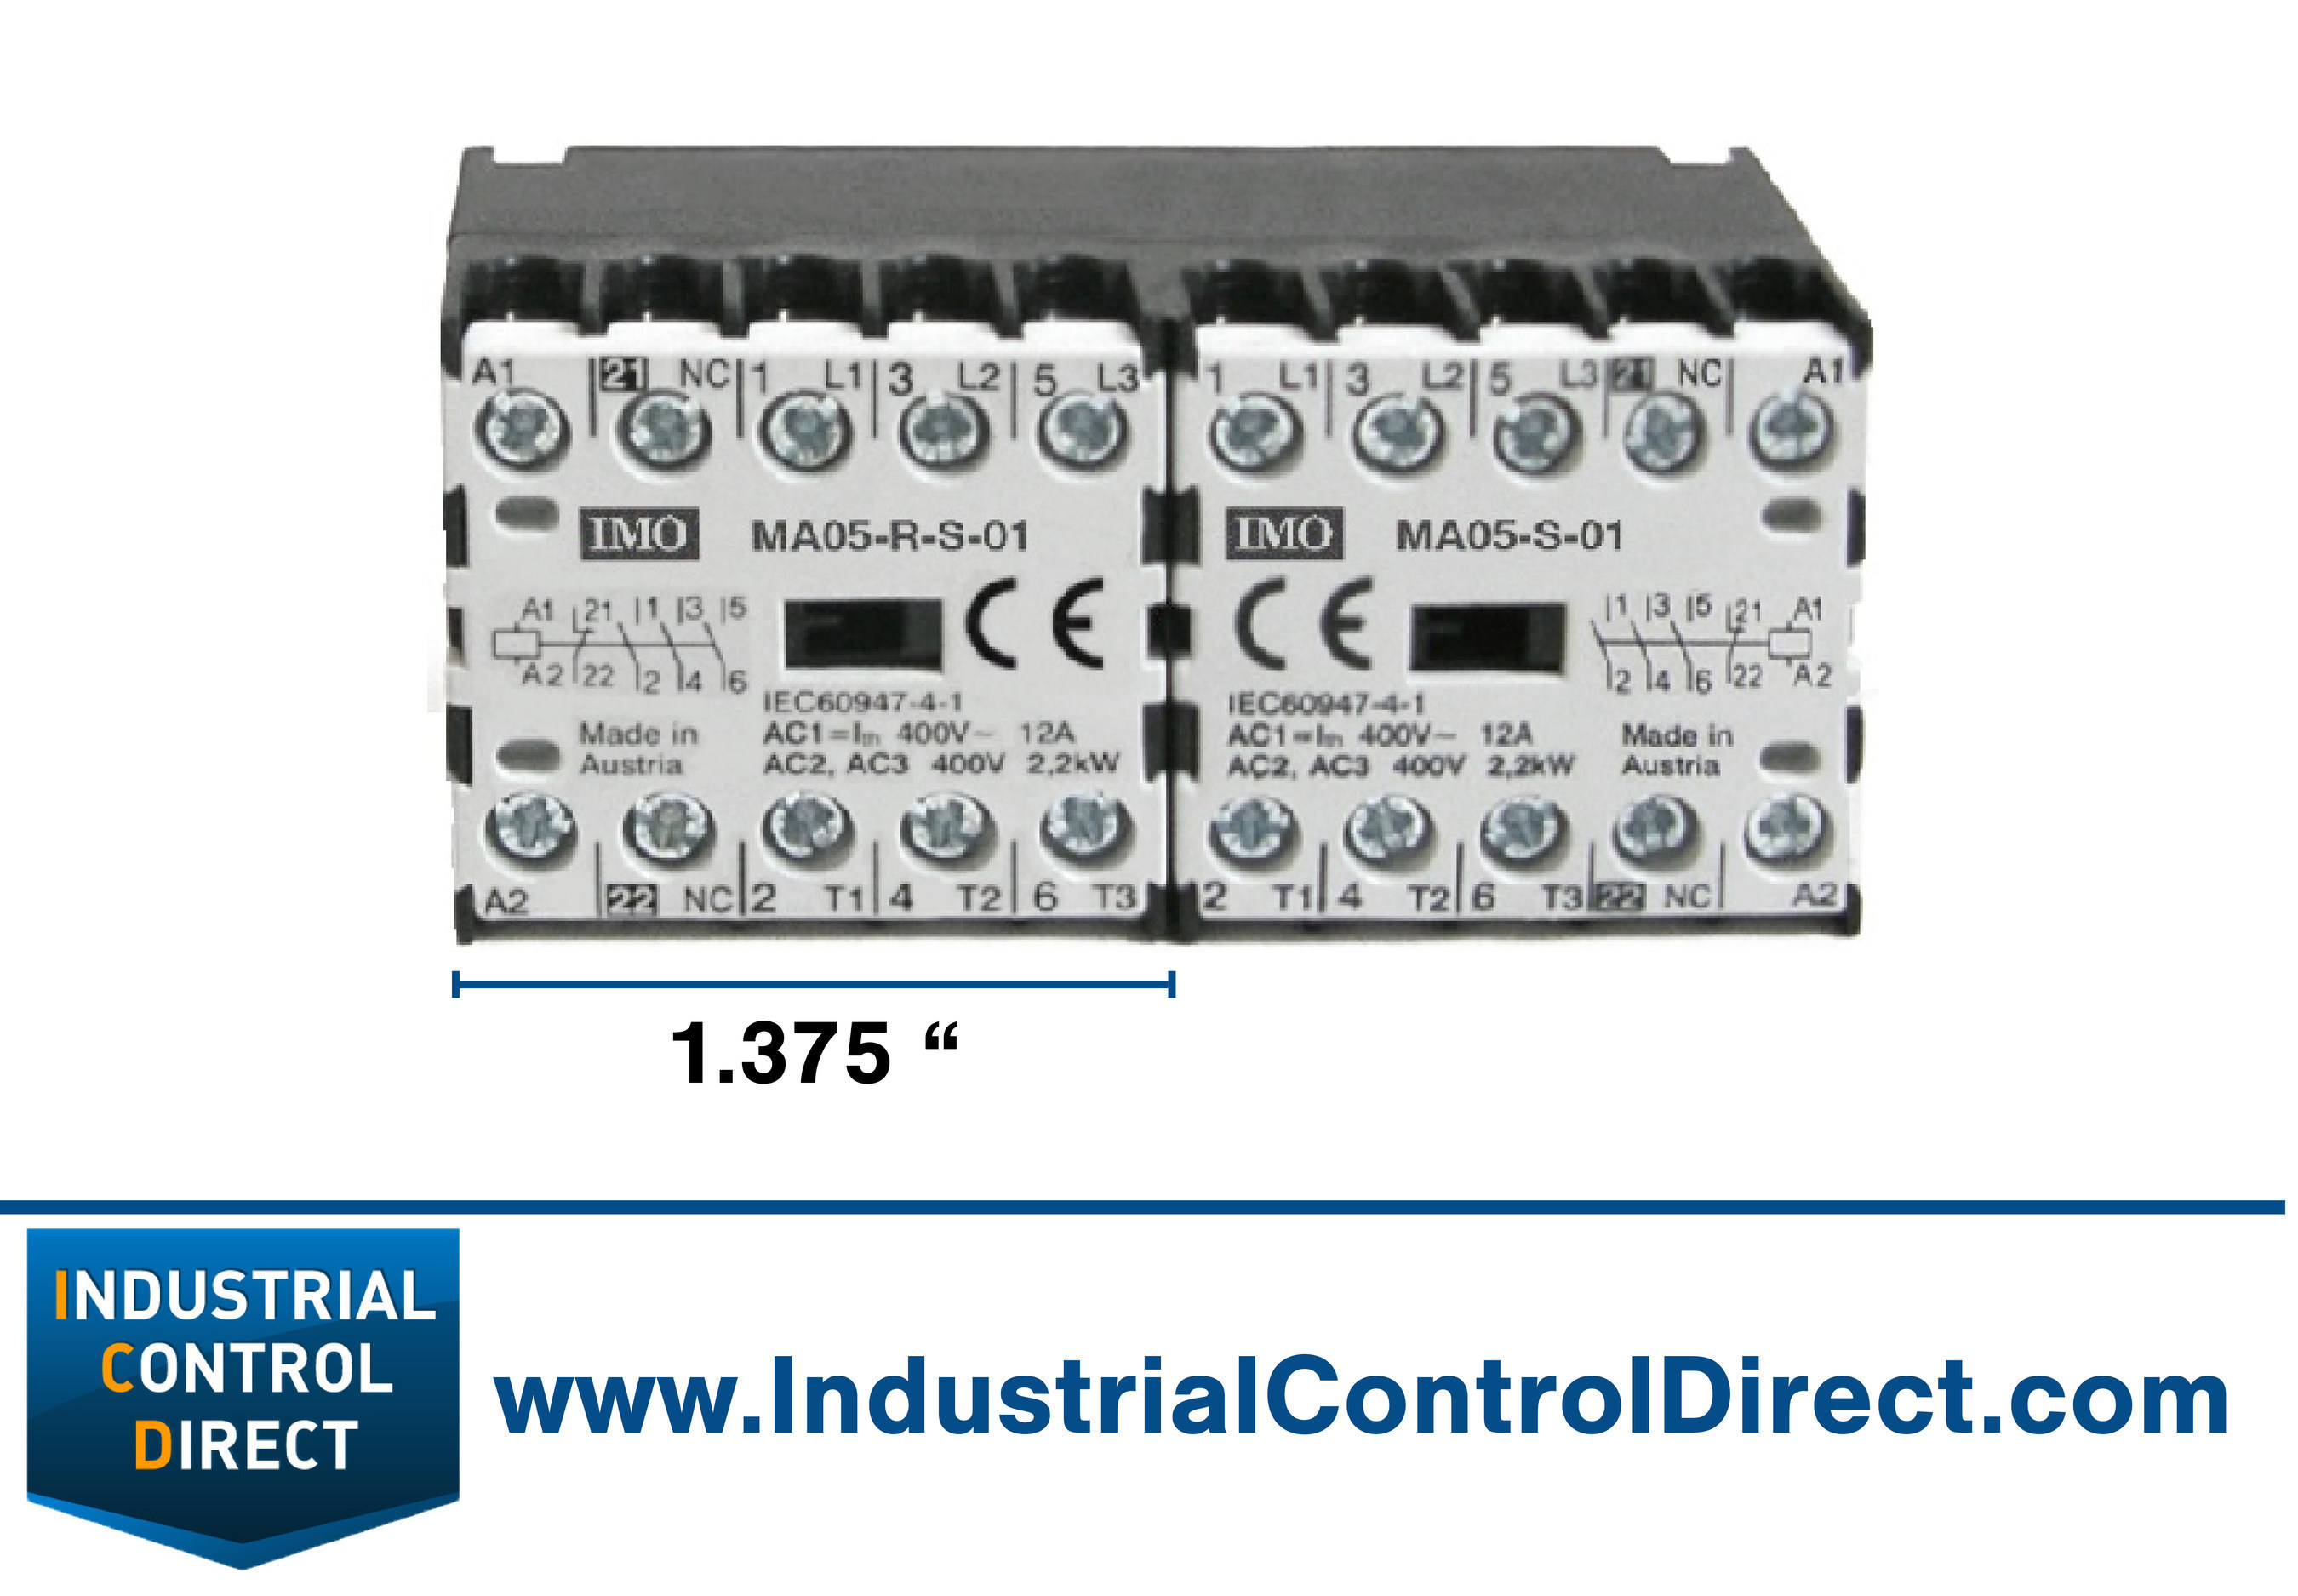 World's Smallest Electrical Contactor Saves Space, Provides Dependable Power Control